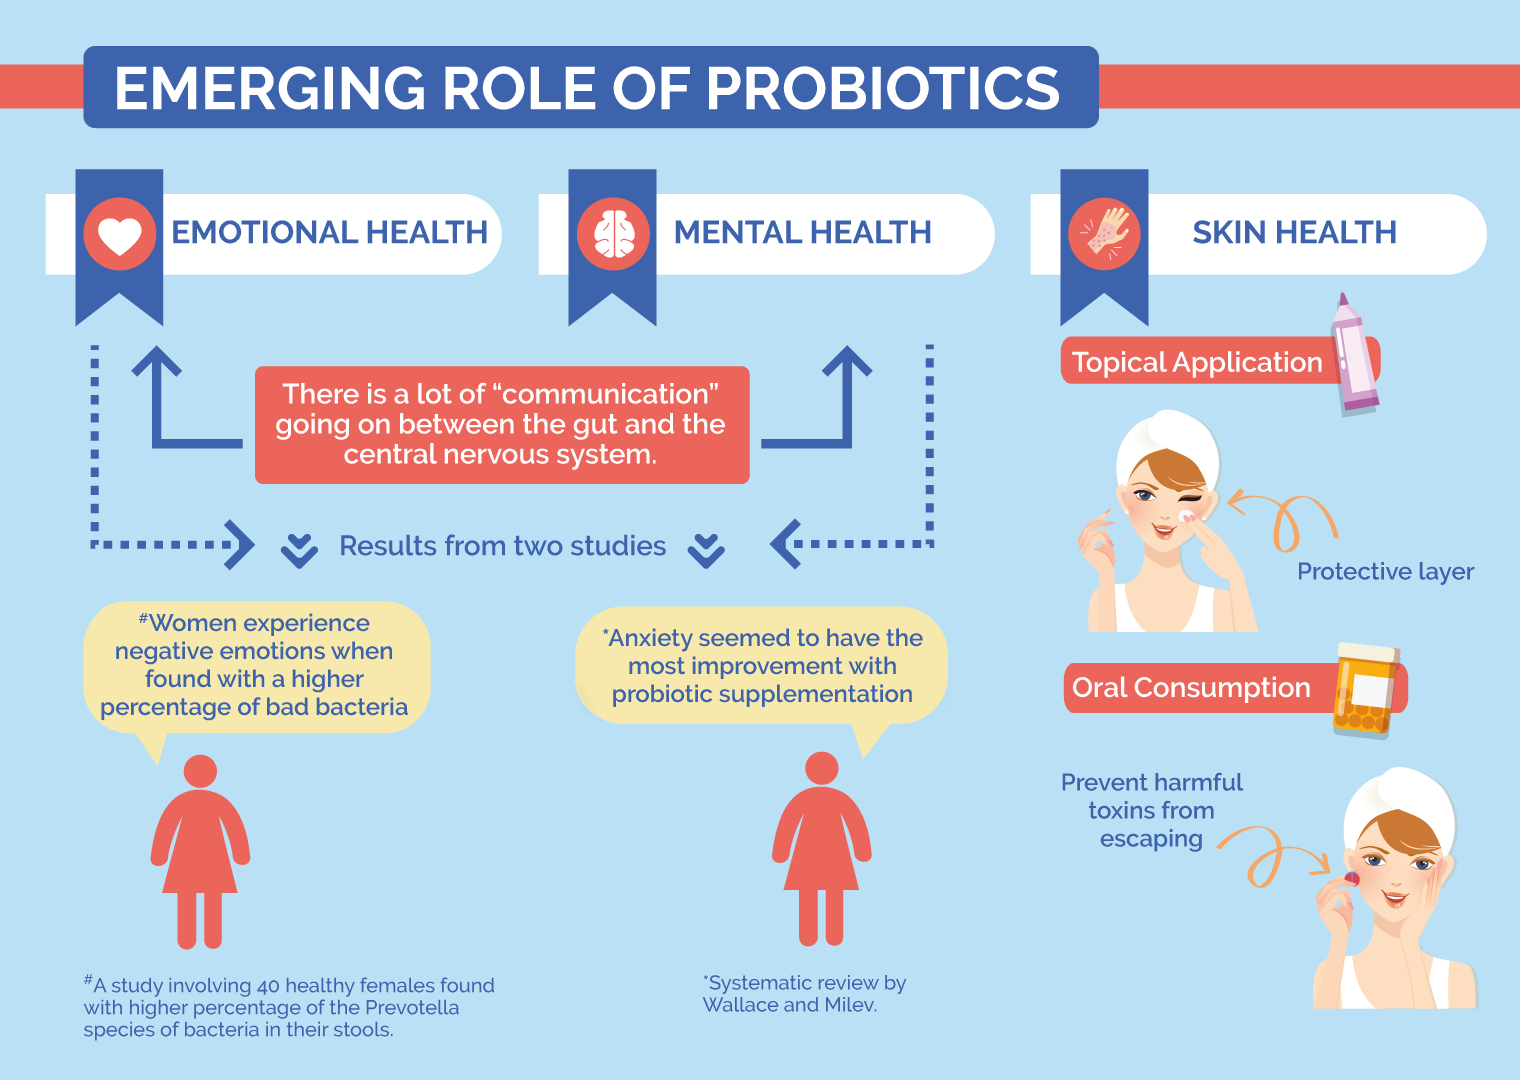 The emerging role of probiotics.